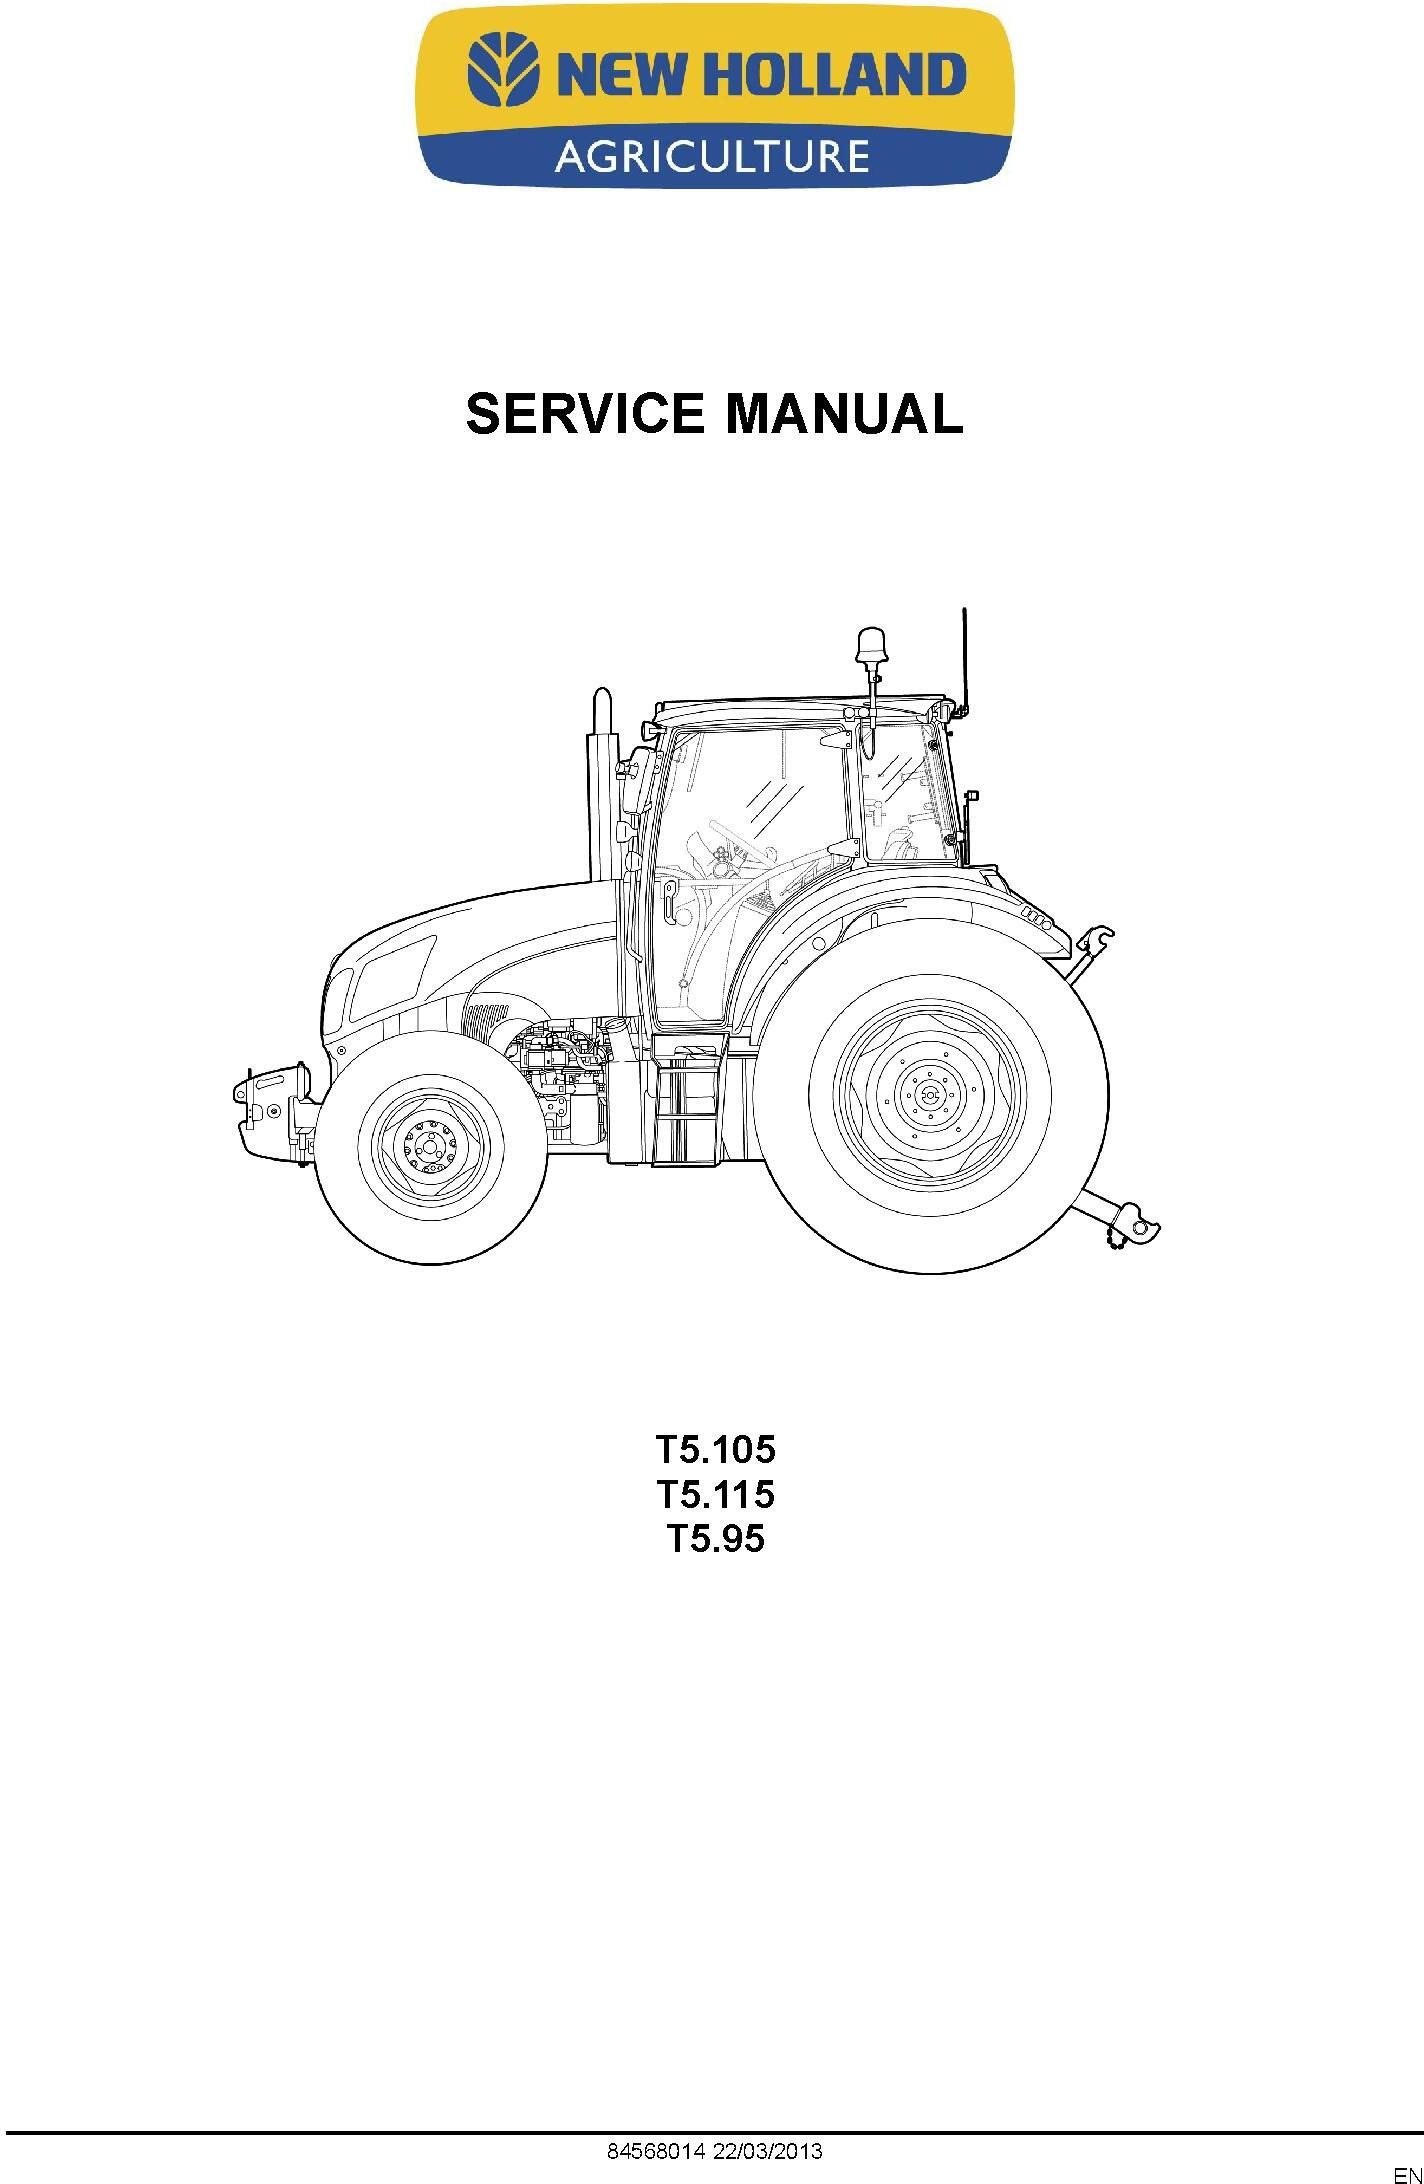 New Holland T5.95, T5.105, T5.115 Tractor Complete Service Manual - 1